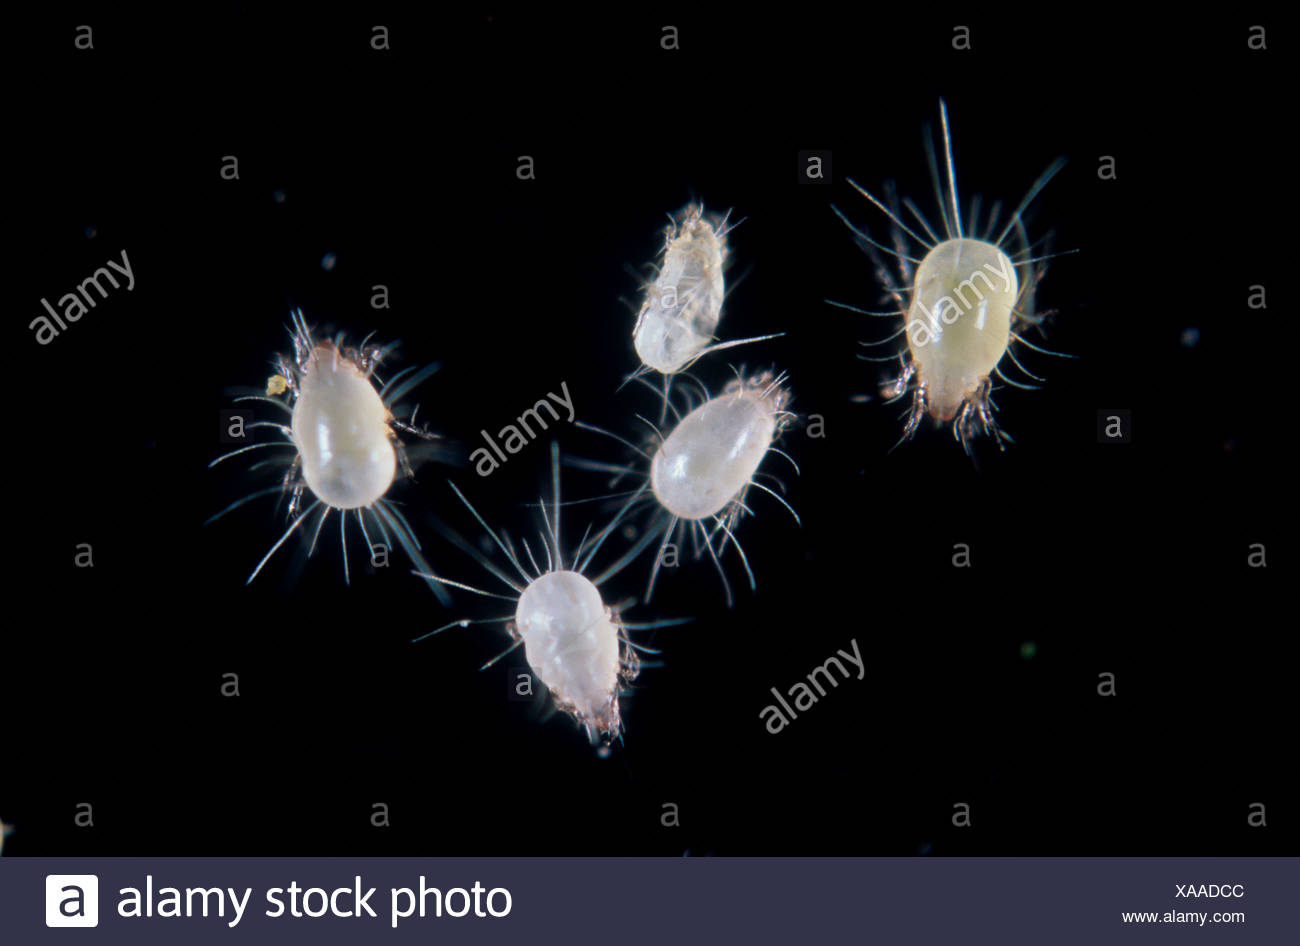 House dust mite Glycyphagus domesticus mites Stock Photo